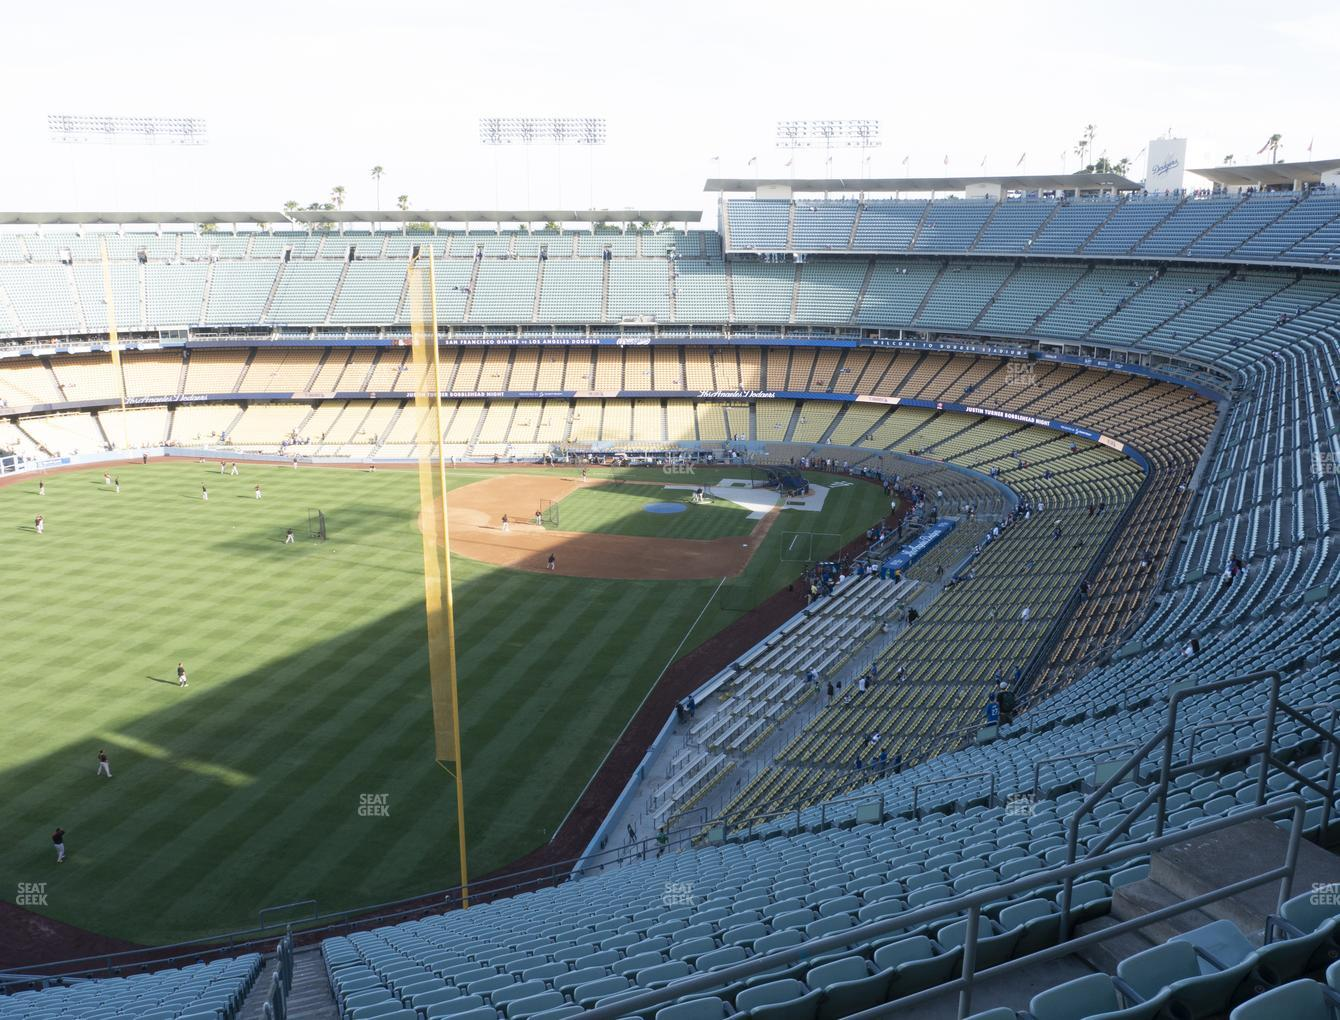 Los Angeles Dodgers at Dodger Stadium Reserve 57 View